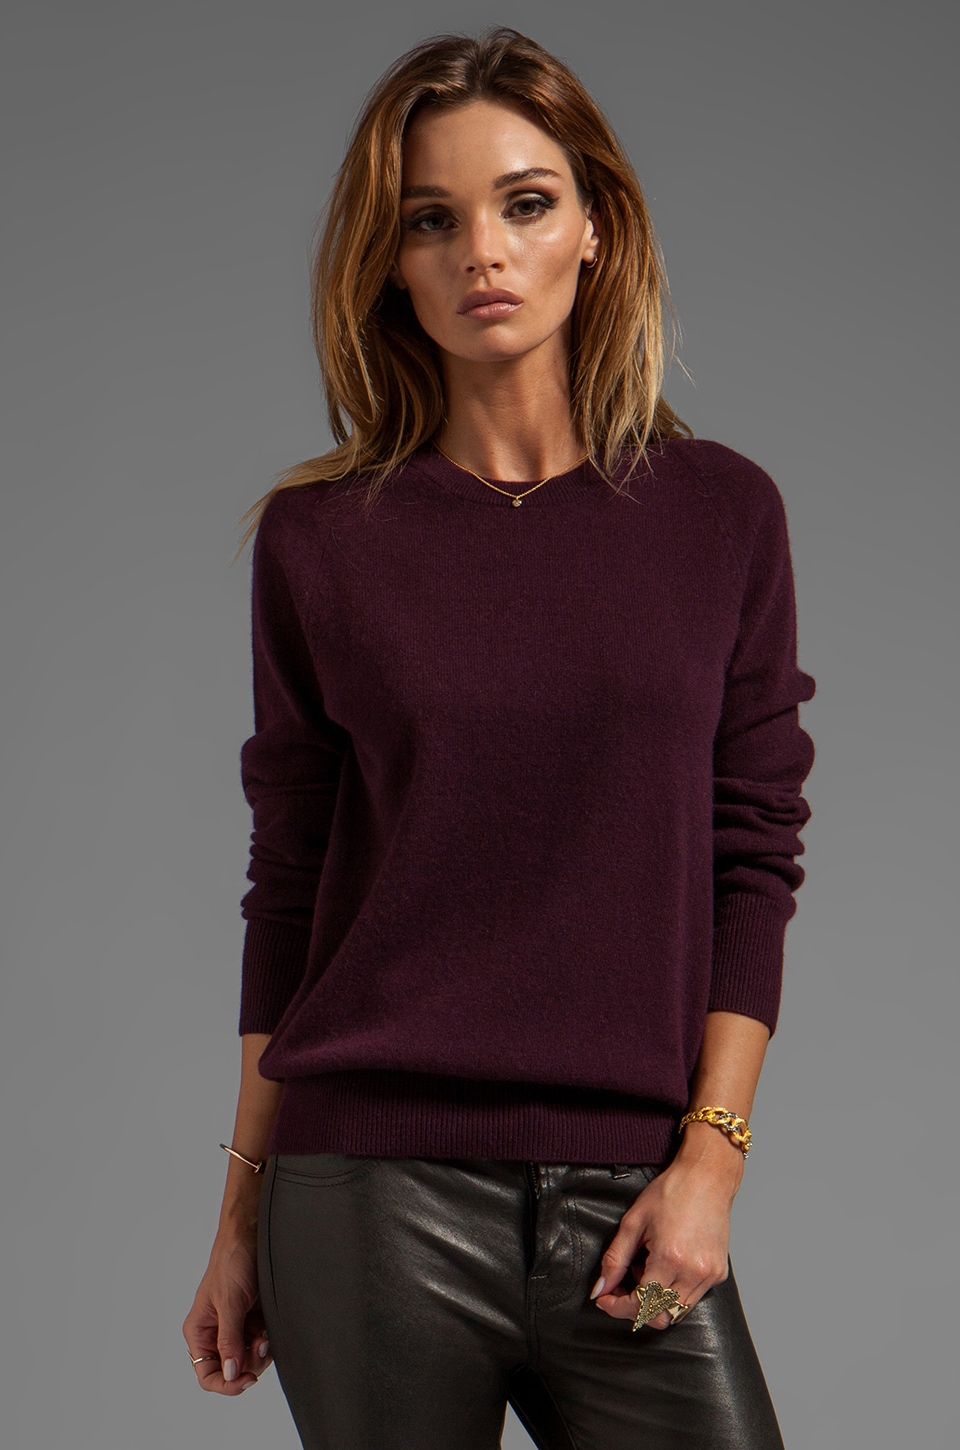 Equipment Sloane Crew Neck Sweater in Cabernet